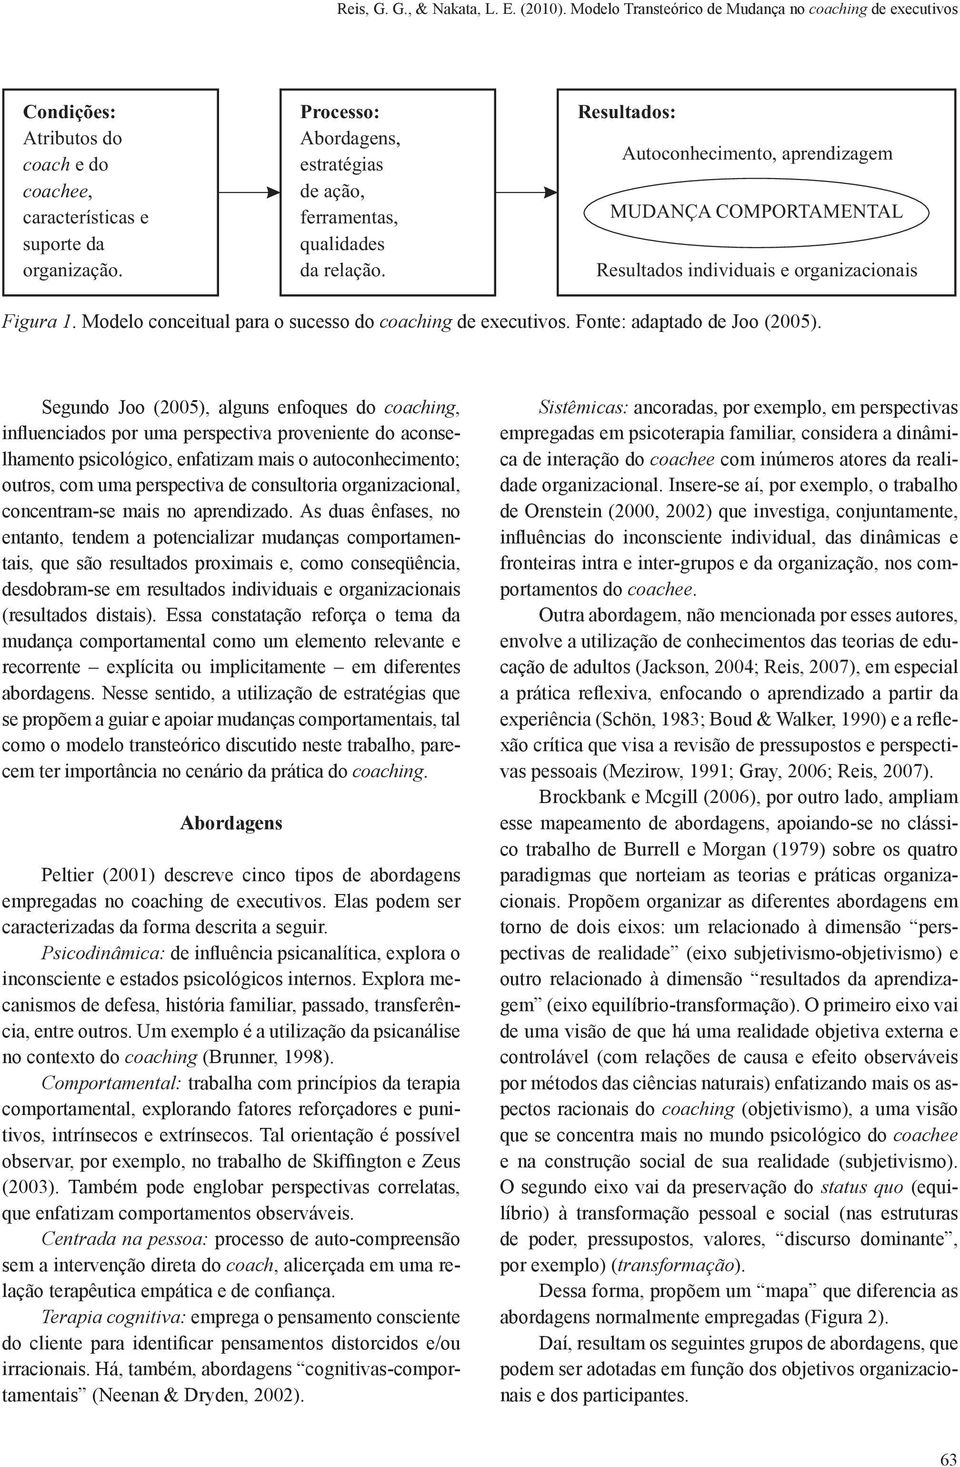 Modelo conceitual para o sucesso do coaching de executivos. Fonte: adaptado de Joo (2005).